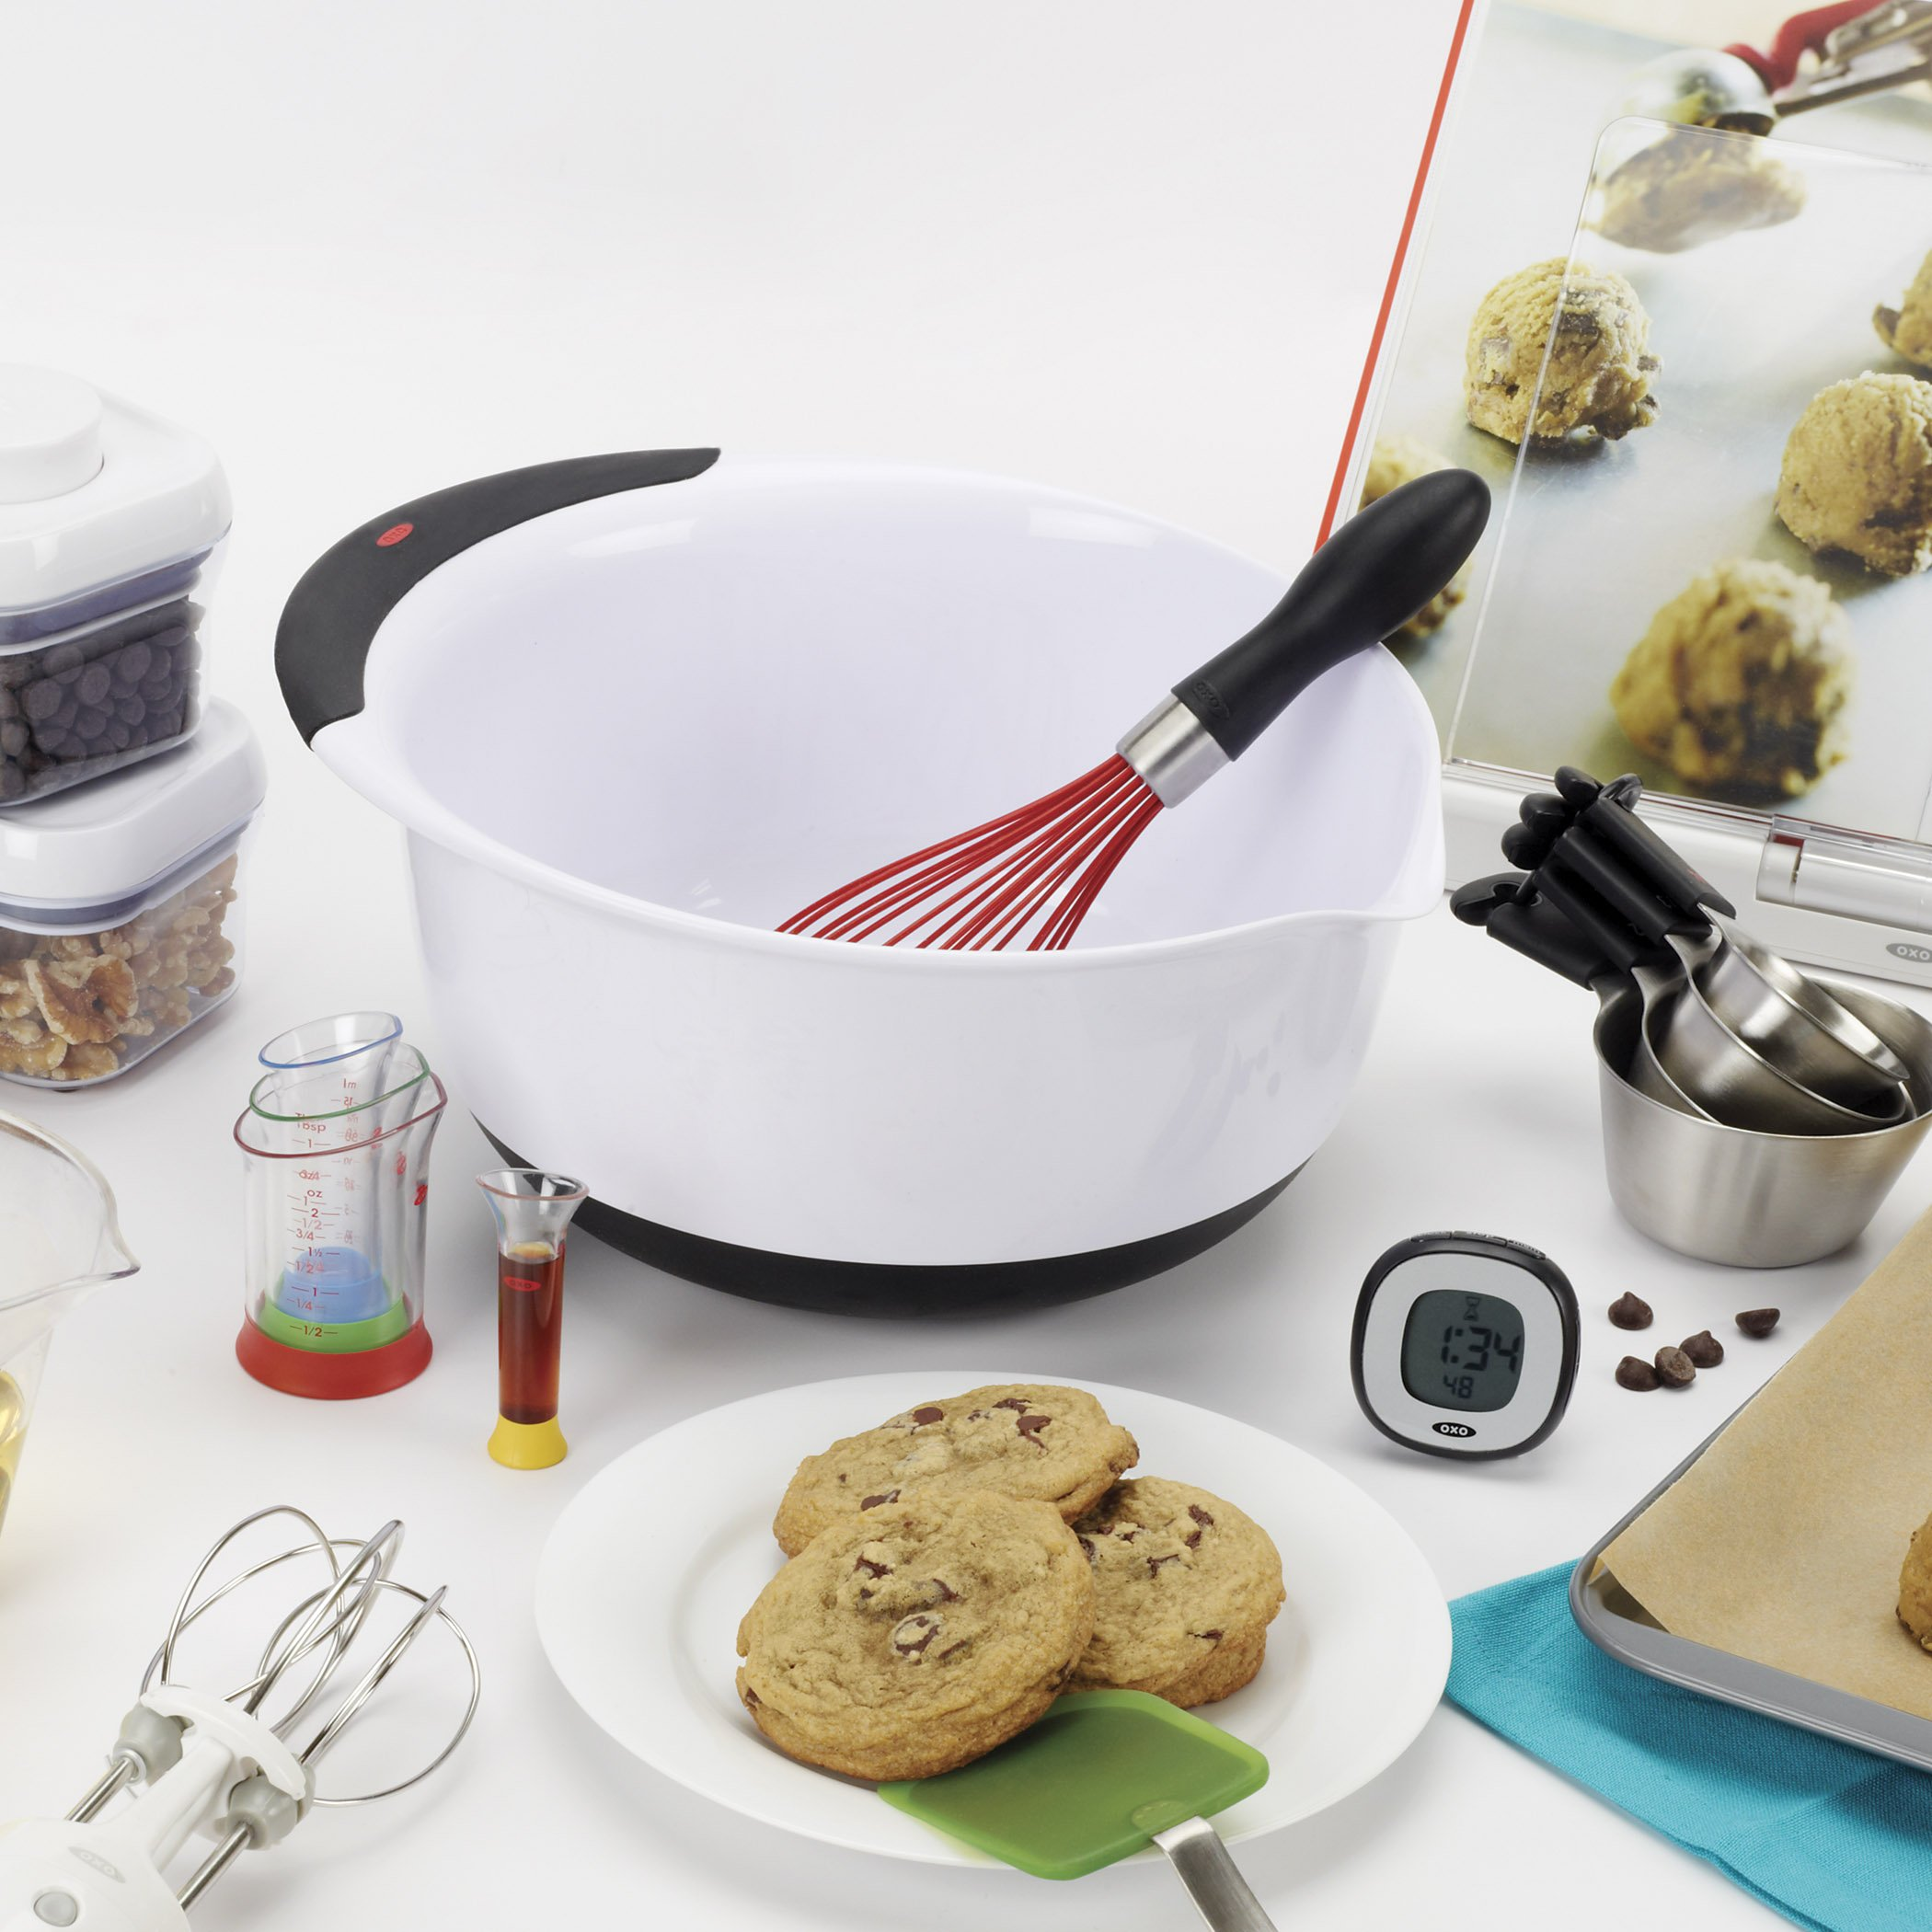 OXO Good Grips Mixing Bowl Set with Black Handles, 3-Piece by OXO (Image #2)